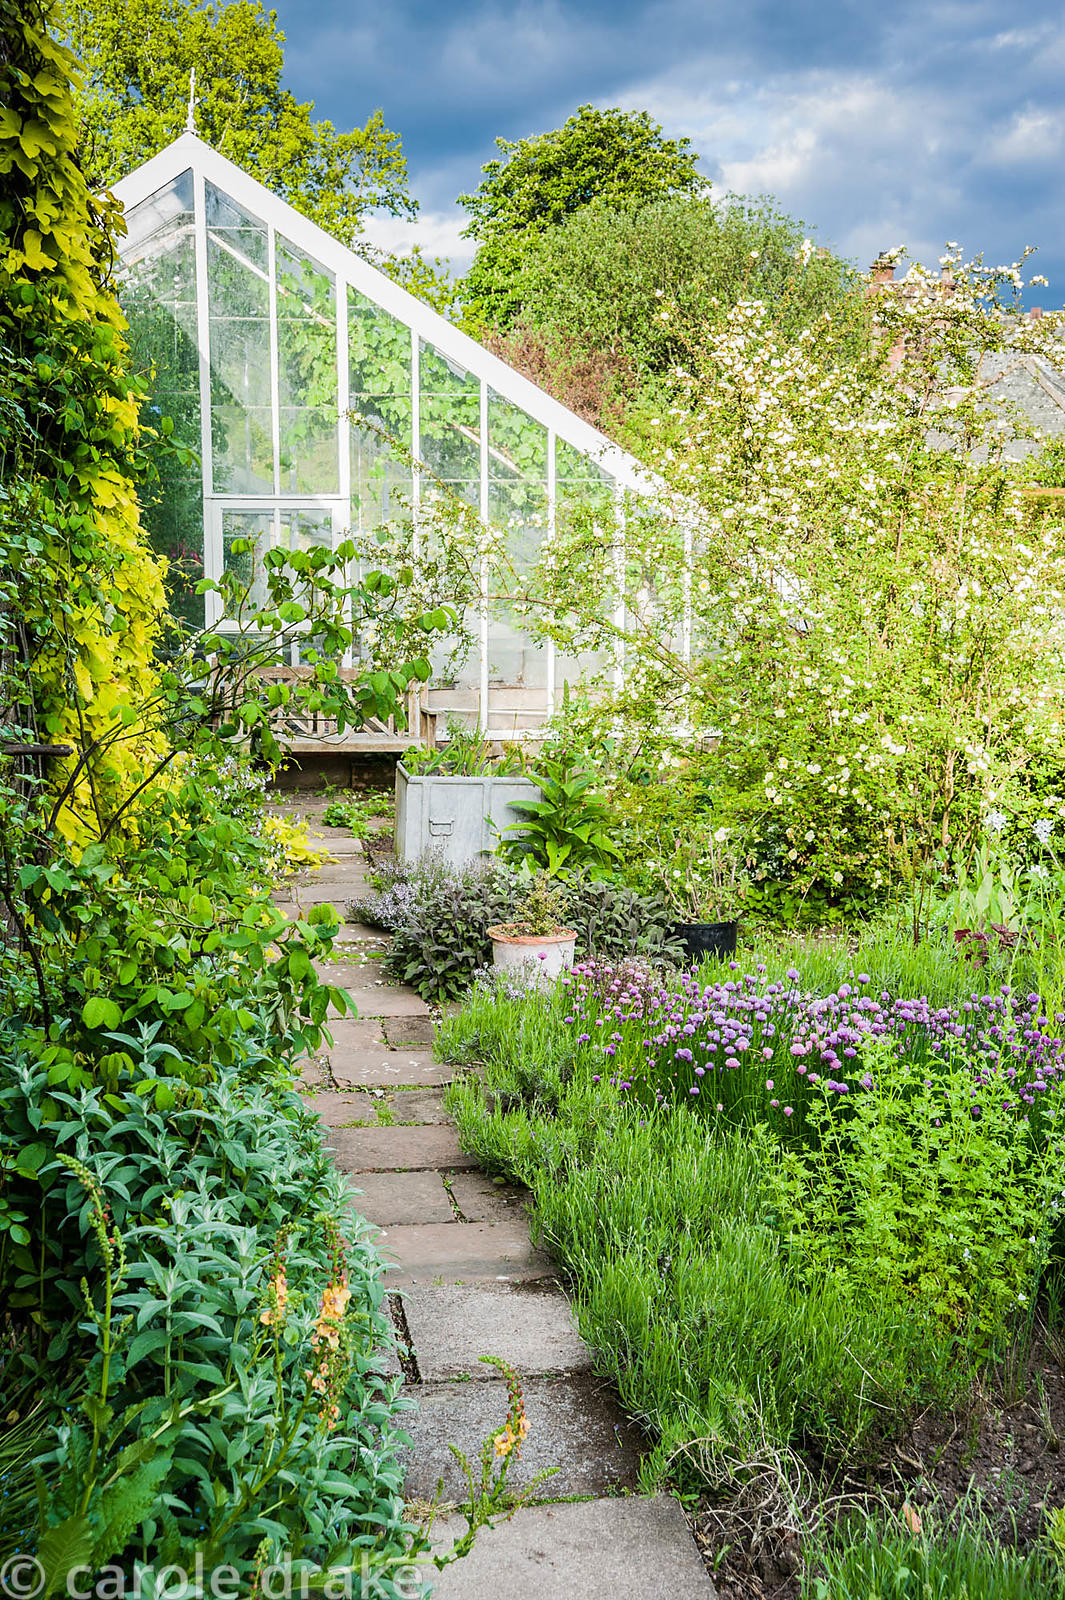 A path leads between lavender, chives, sage and thyme toward the greenhouse.